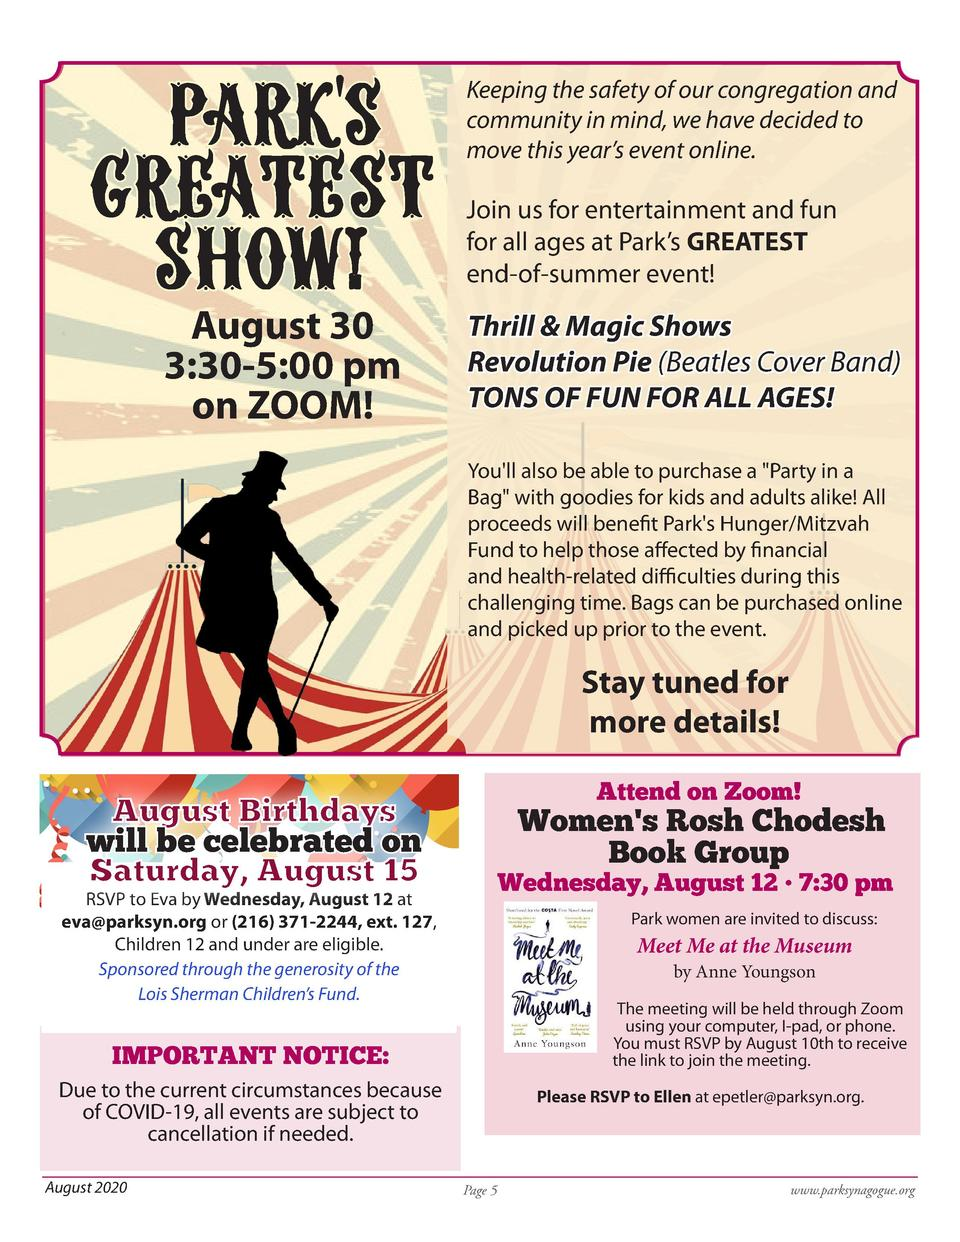 Parks greatest show  August 30 3 30-5 00 pm on ZOOM   Keeping the safety of our congregation and community in mind, we ...